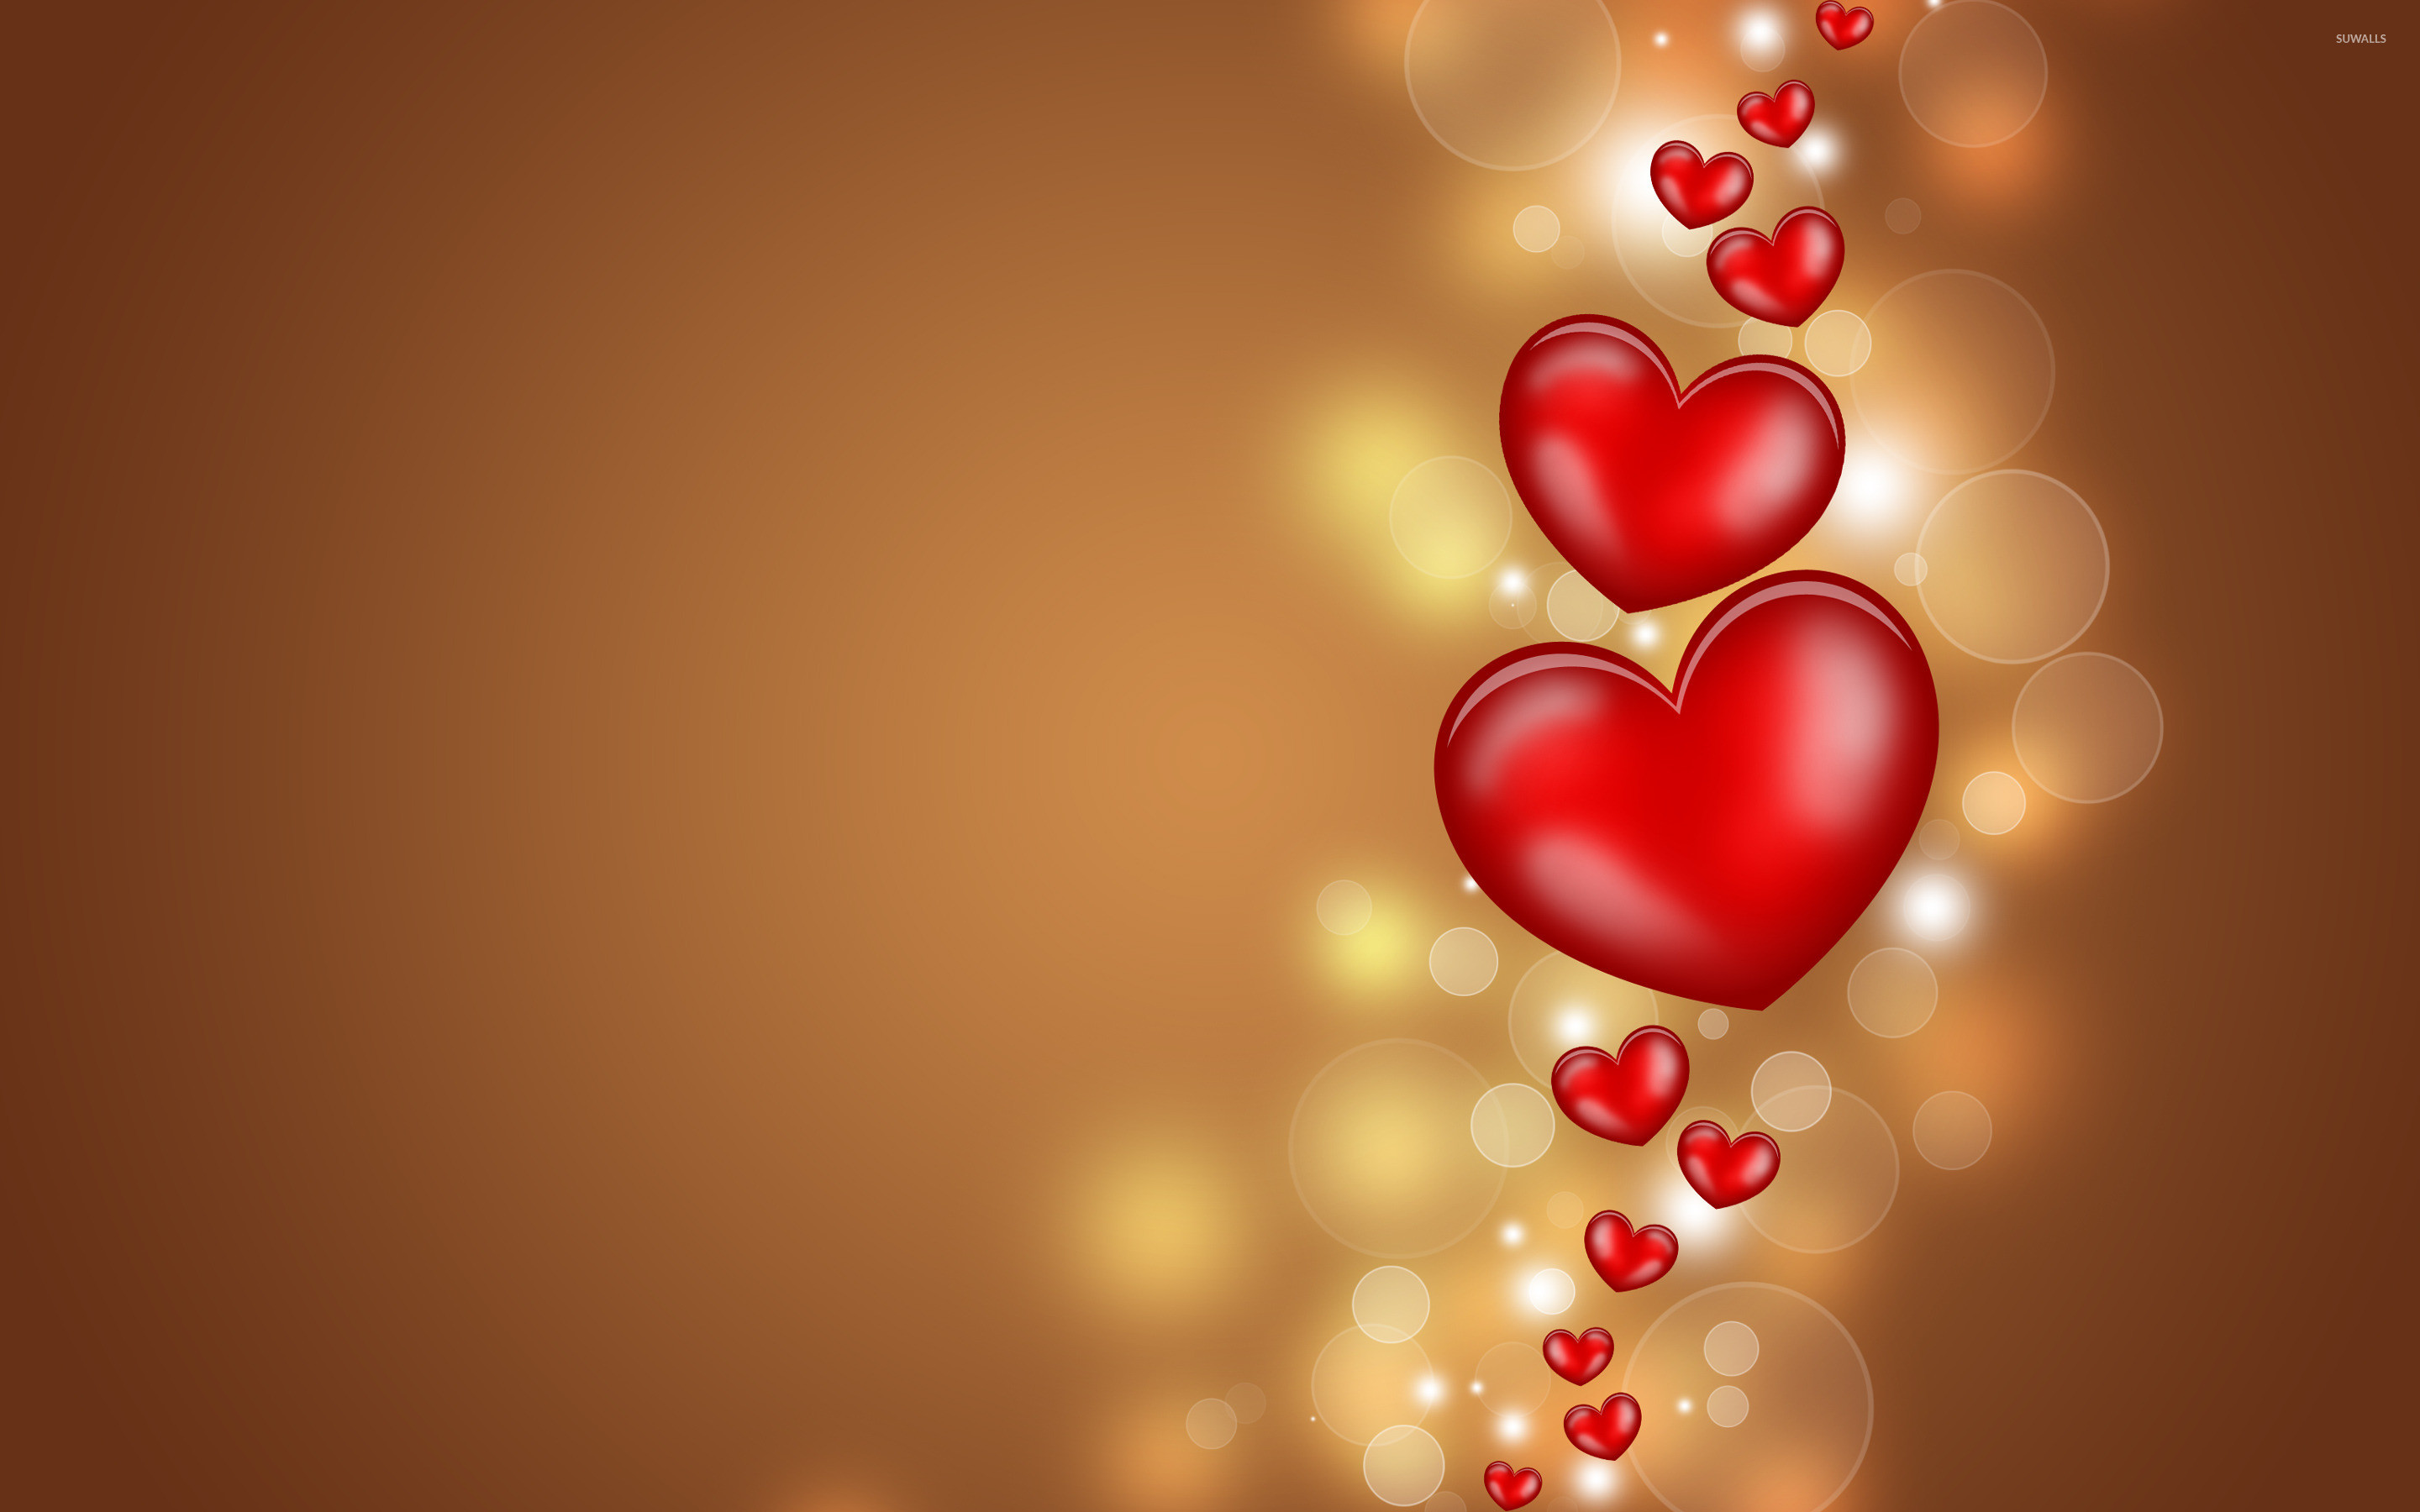 2880x1800 Floating hearts wallpaper